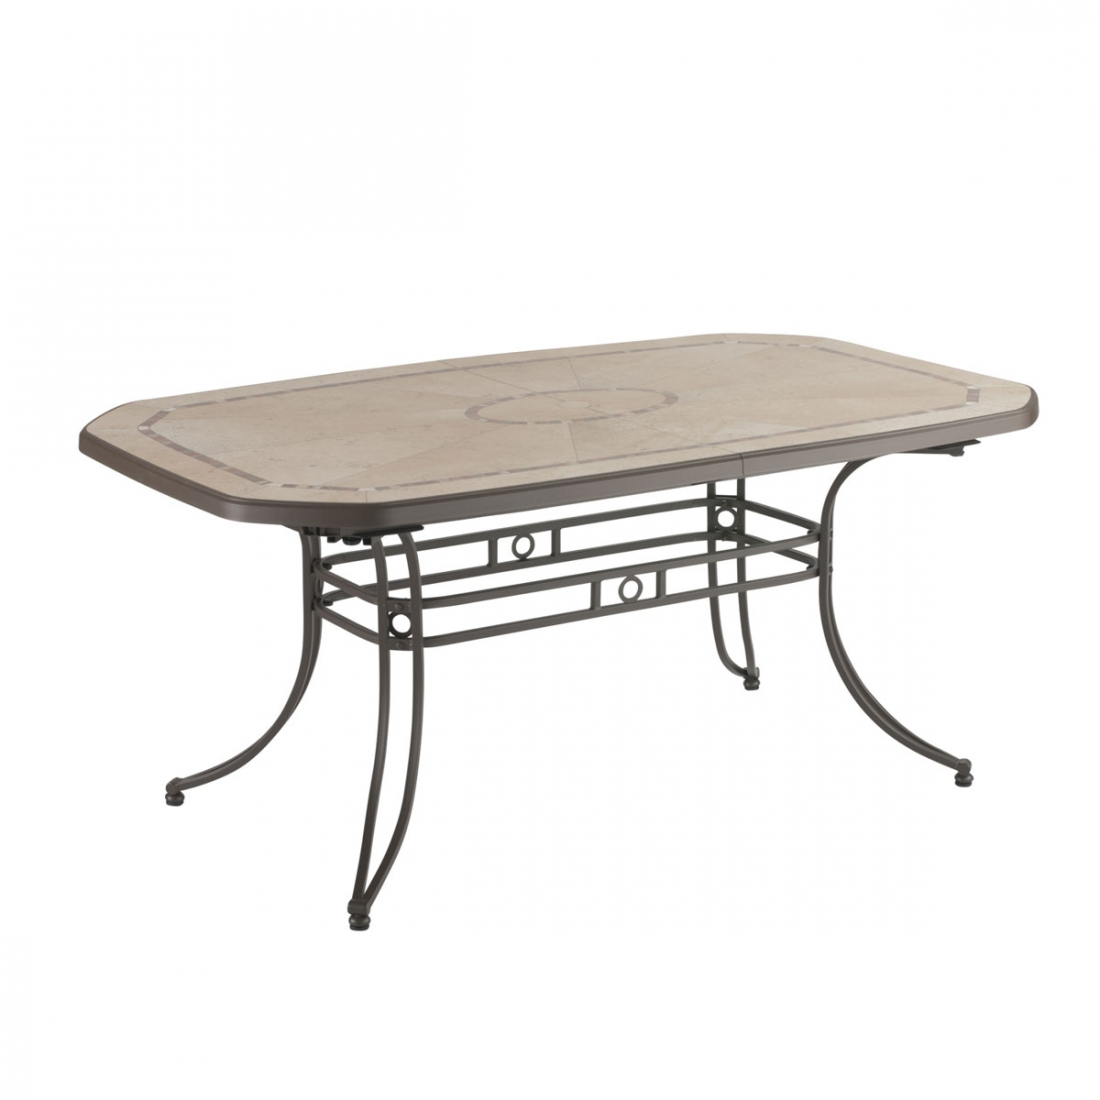 Table design amalfi 220 grosfillex - Table jardin grofilex besancon ...